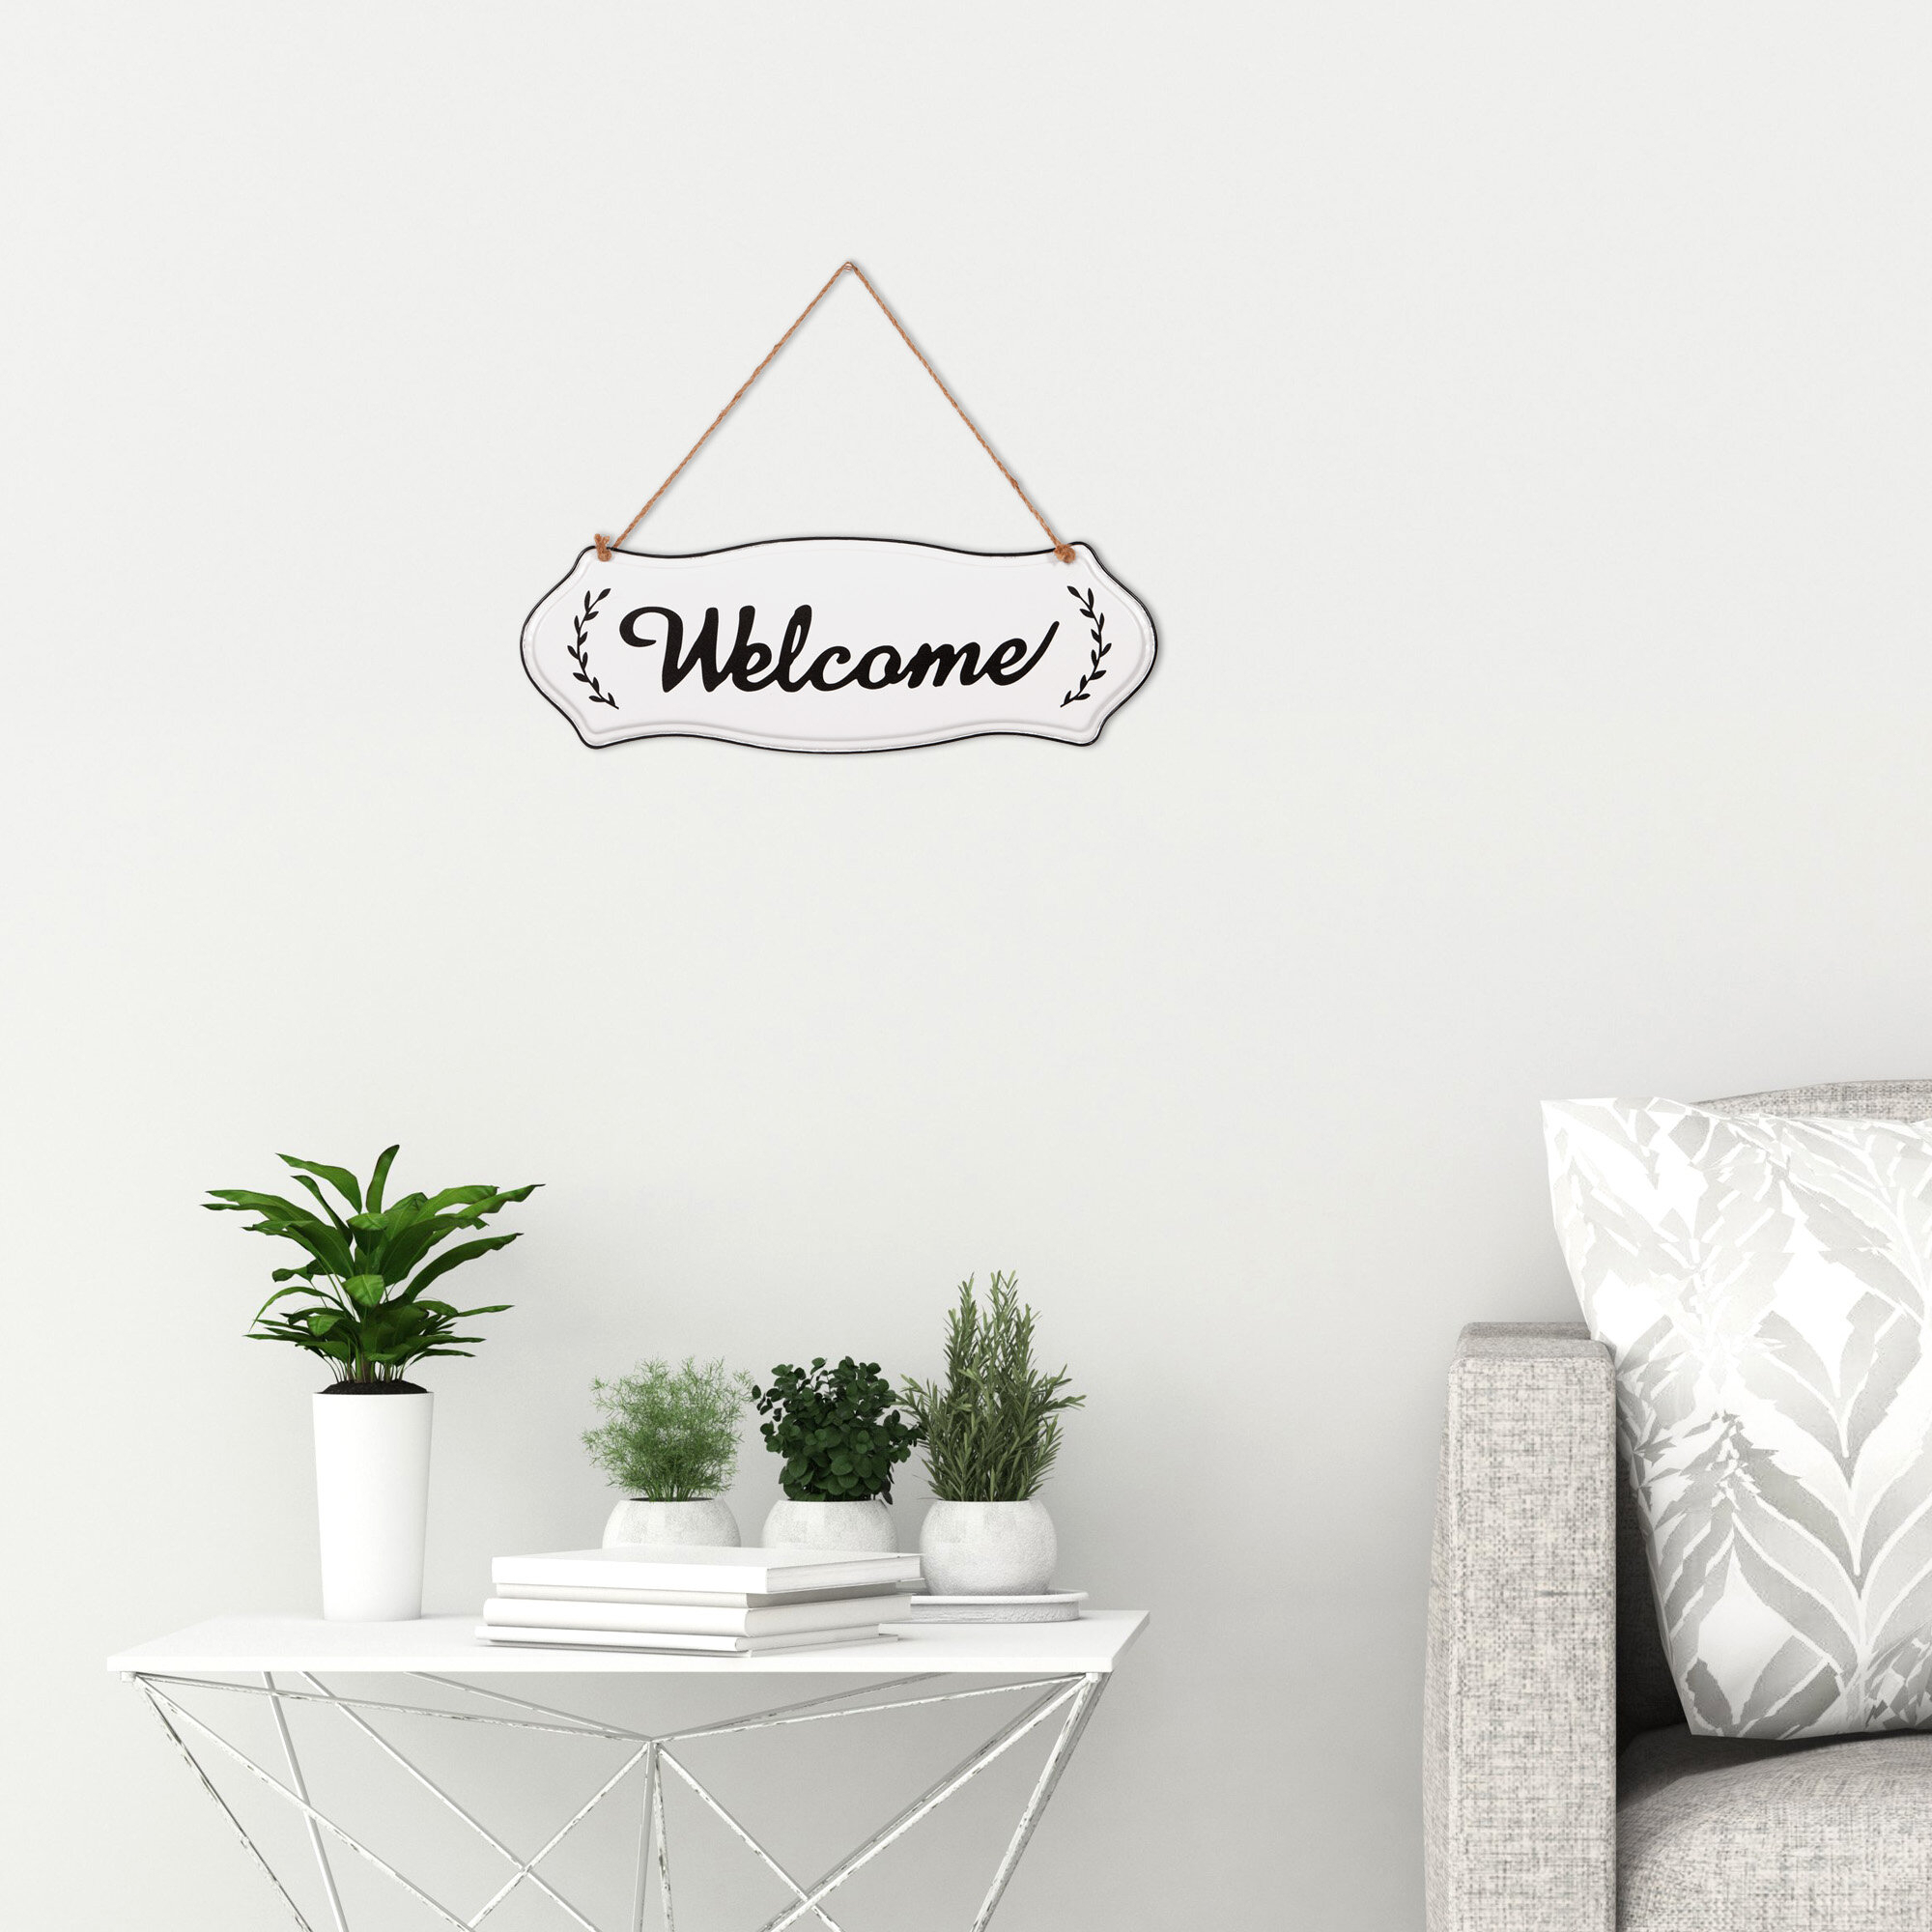 20 Inspirations Of Metal Rope Wall Sign Wall Decor regarding Metal Rope Wall Sign Wall Decor (Image 3 of 30)